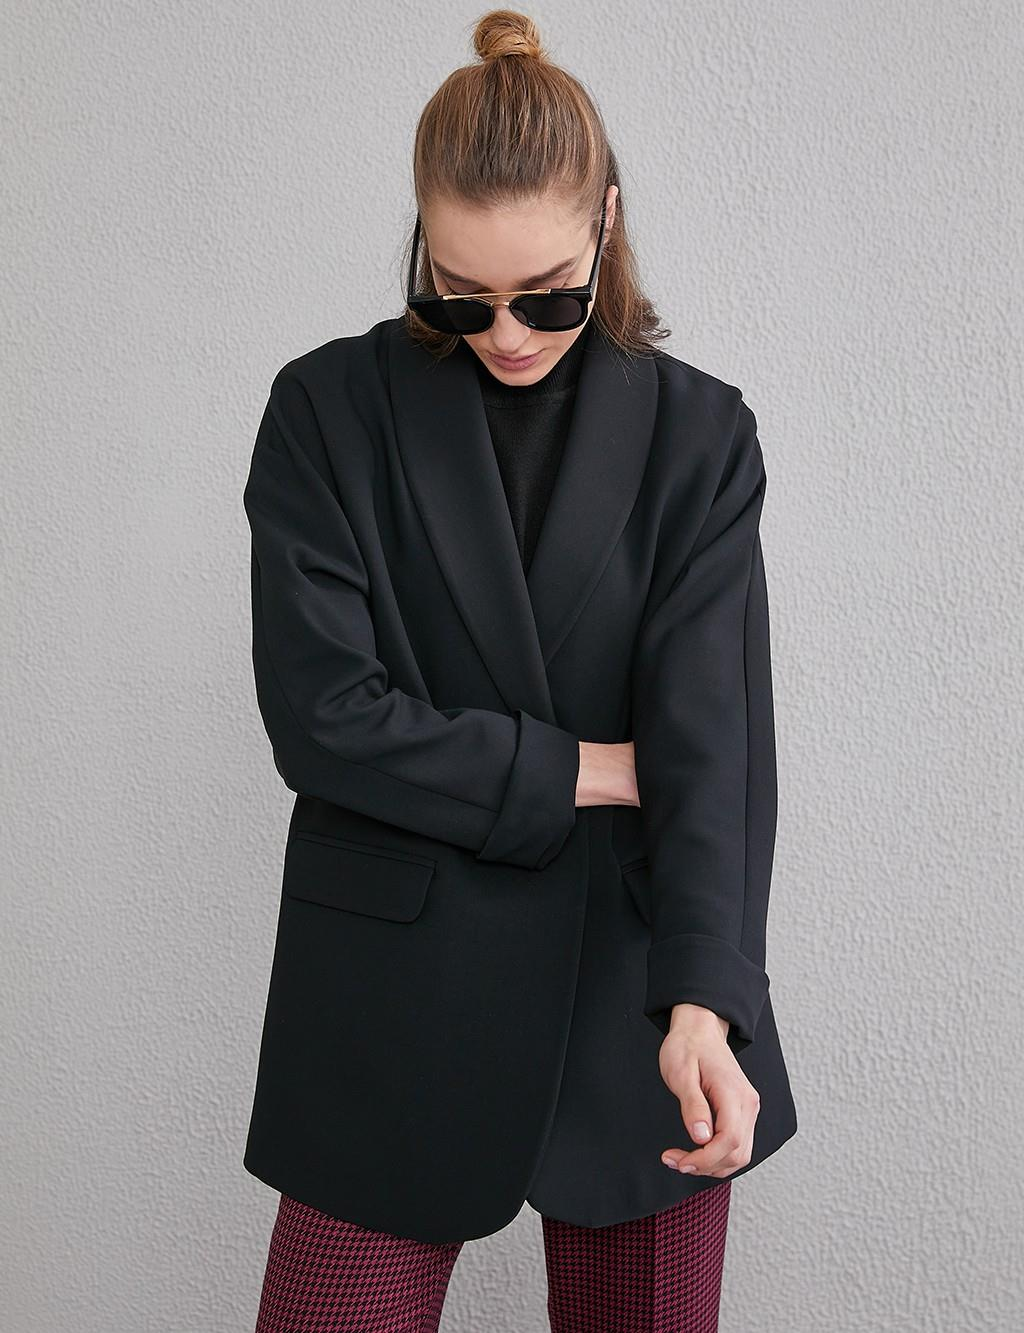 Jacket With Flap Pockets A20 13103 Black